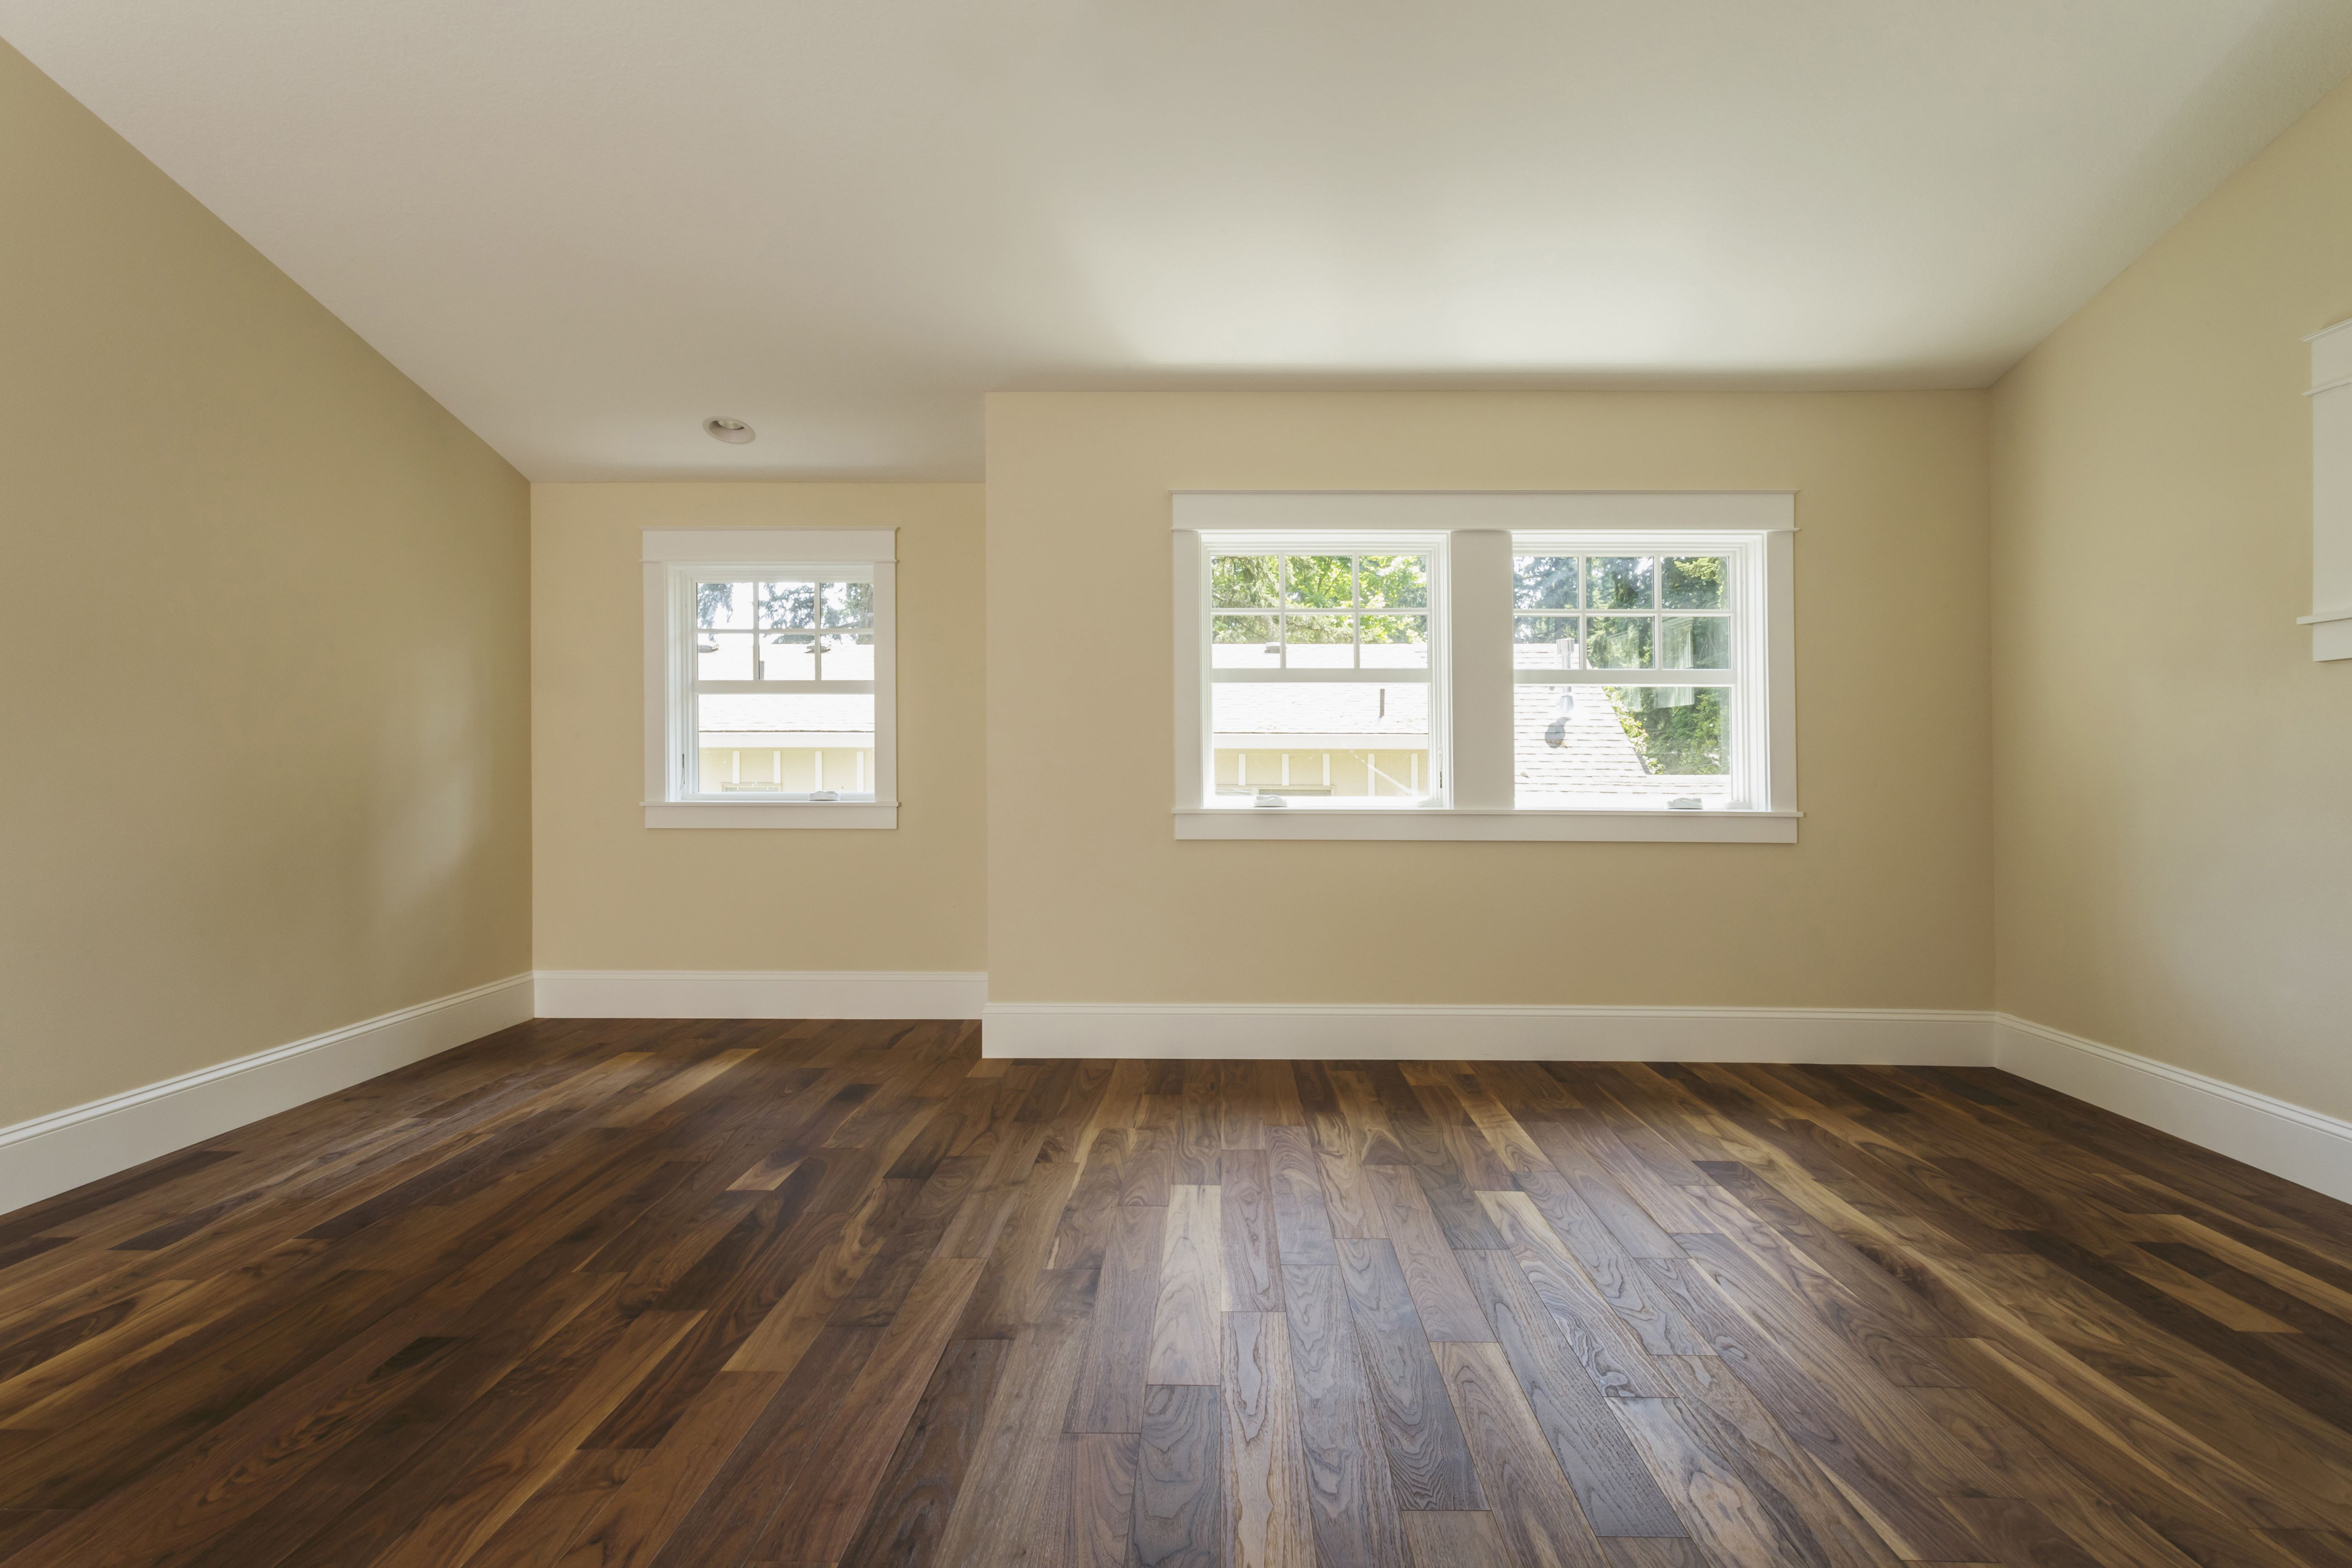 layout for hardwood floor install of its easy and fast to install plank vinyl flooring with wooden floor in empty bedroom 482143001 588bd5f45f9b5874eebd56e9